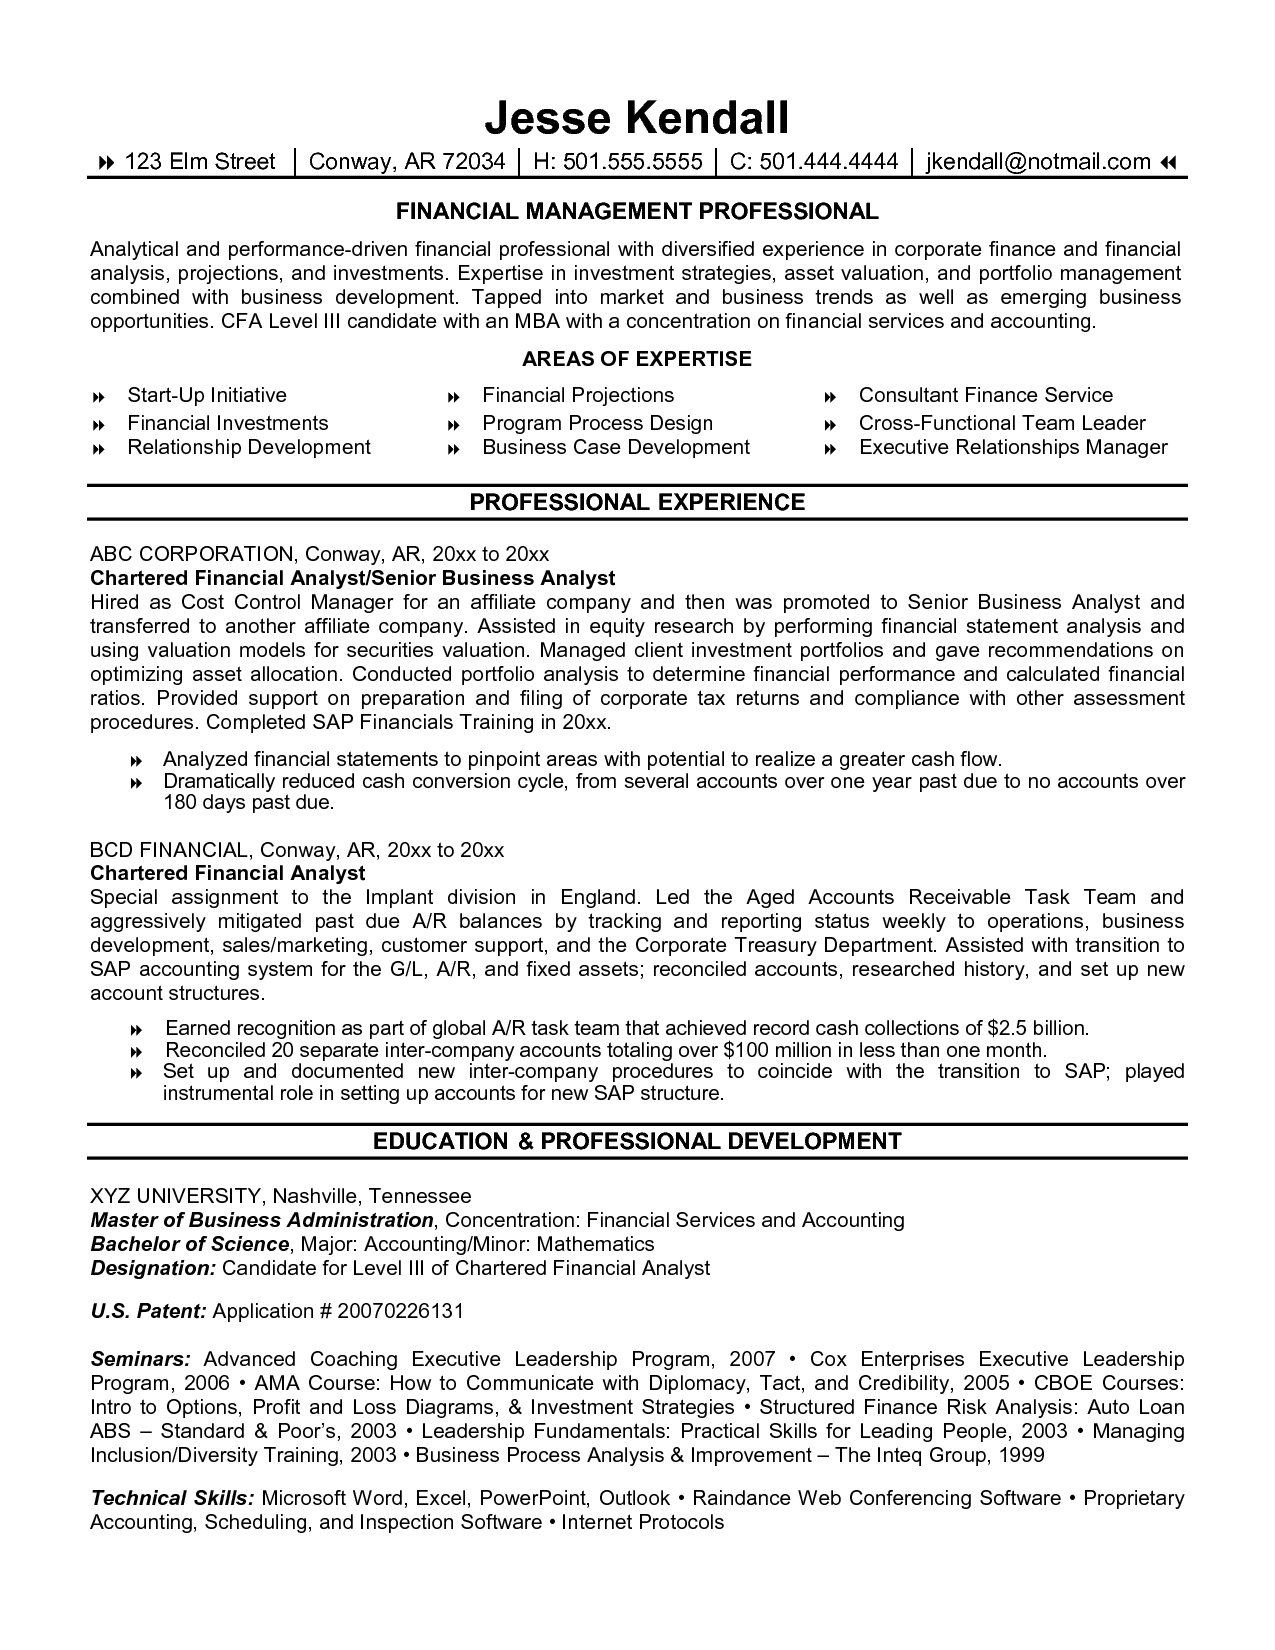 Mba Finance Resume Free Download Resume Financial Management Professional Analyst